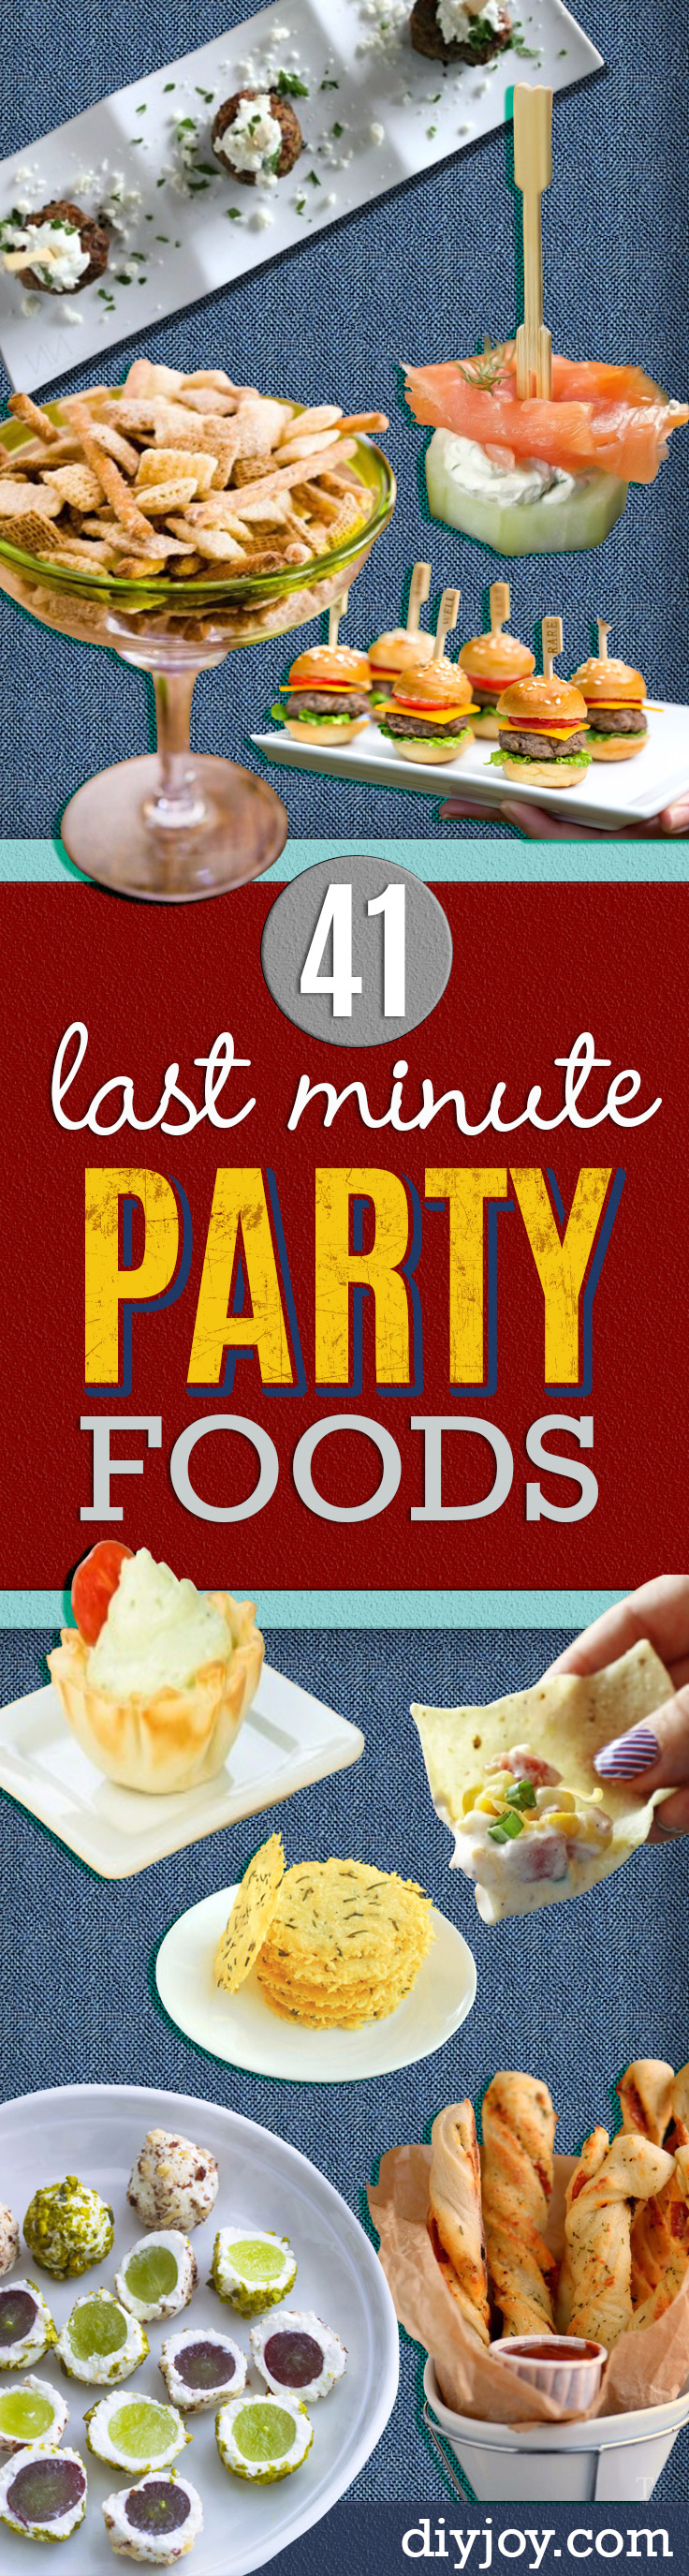 Last Minute Party Foods And Quick Recipes